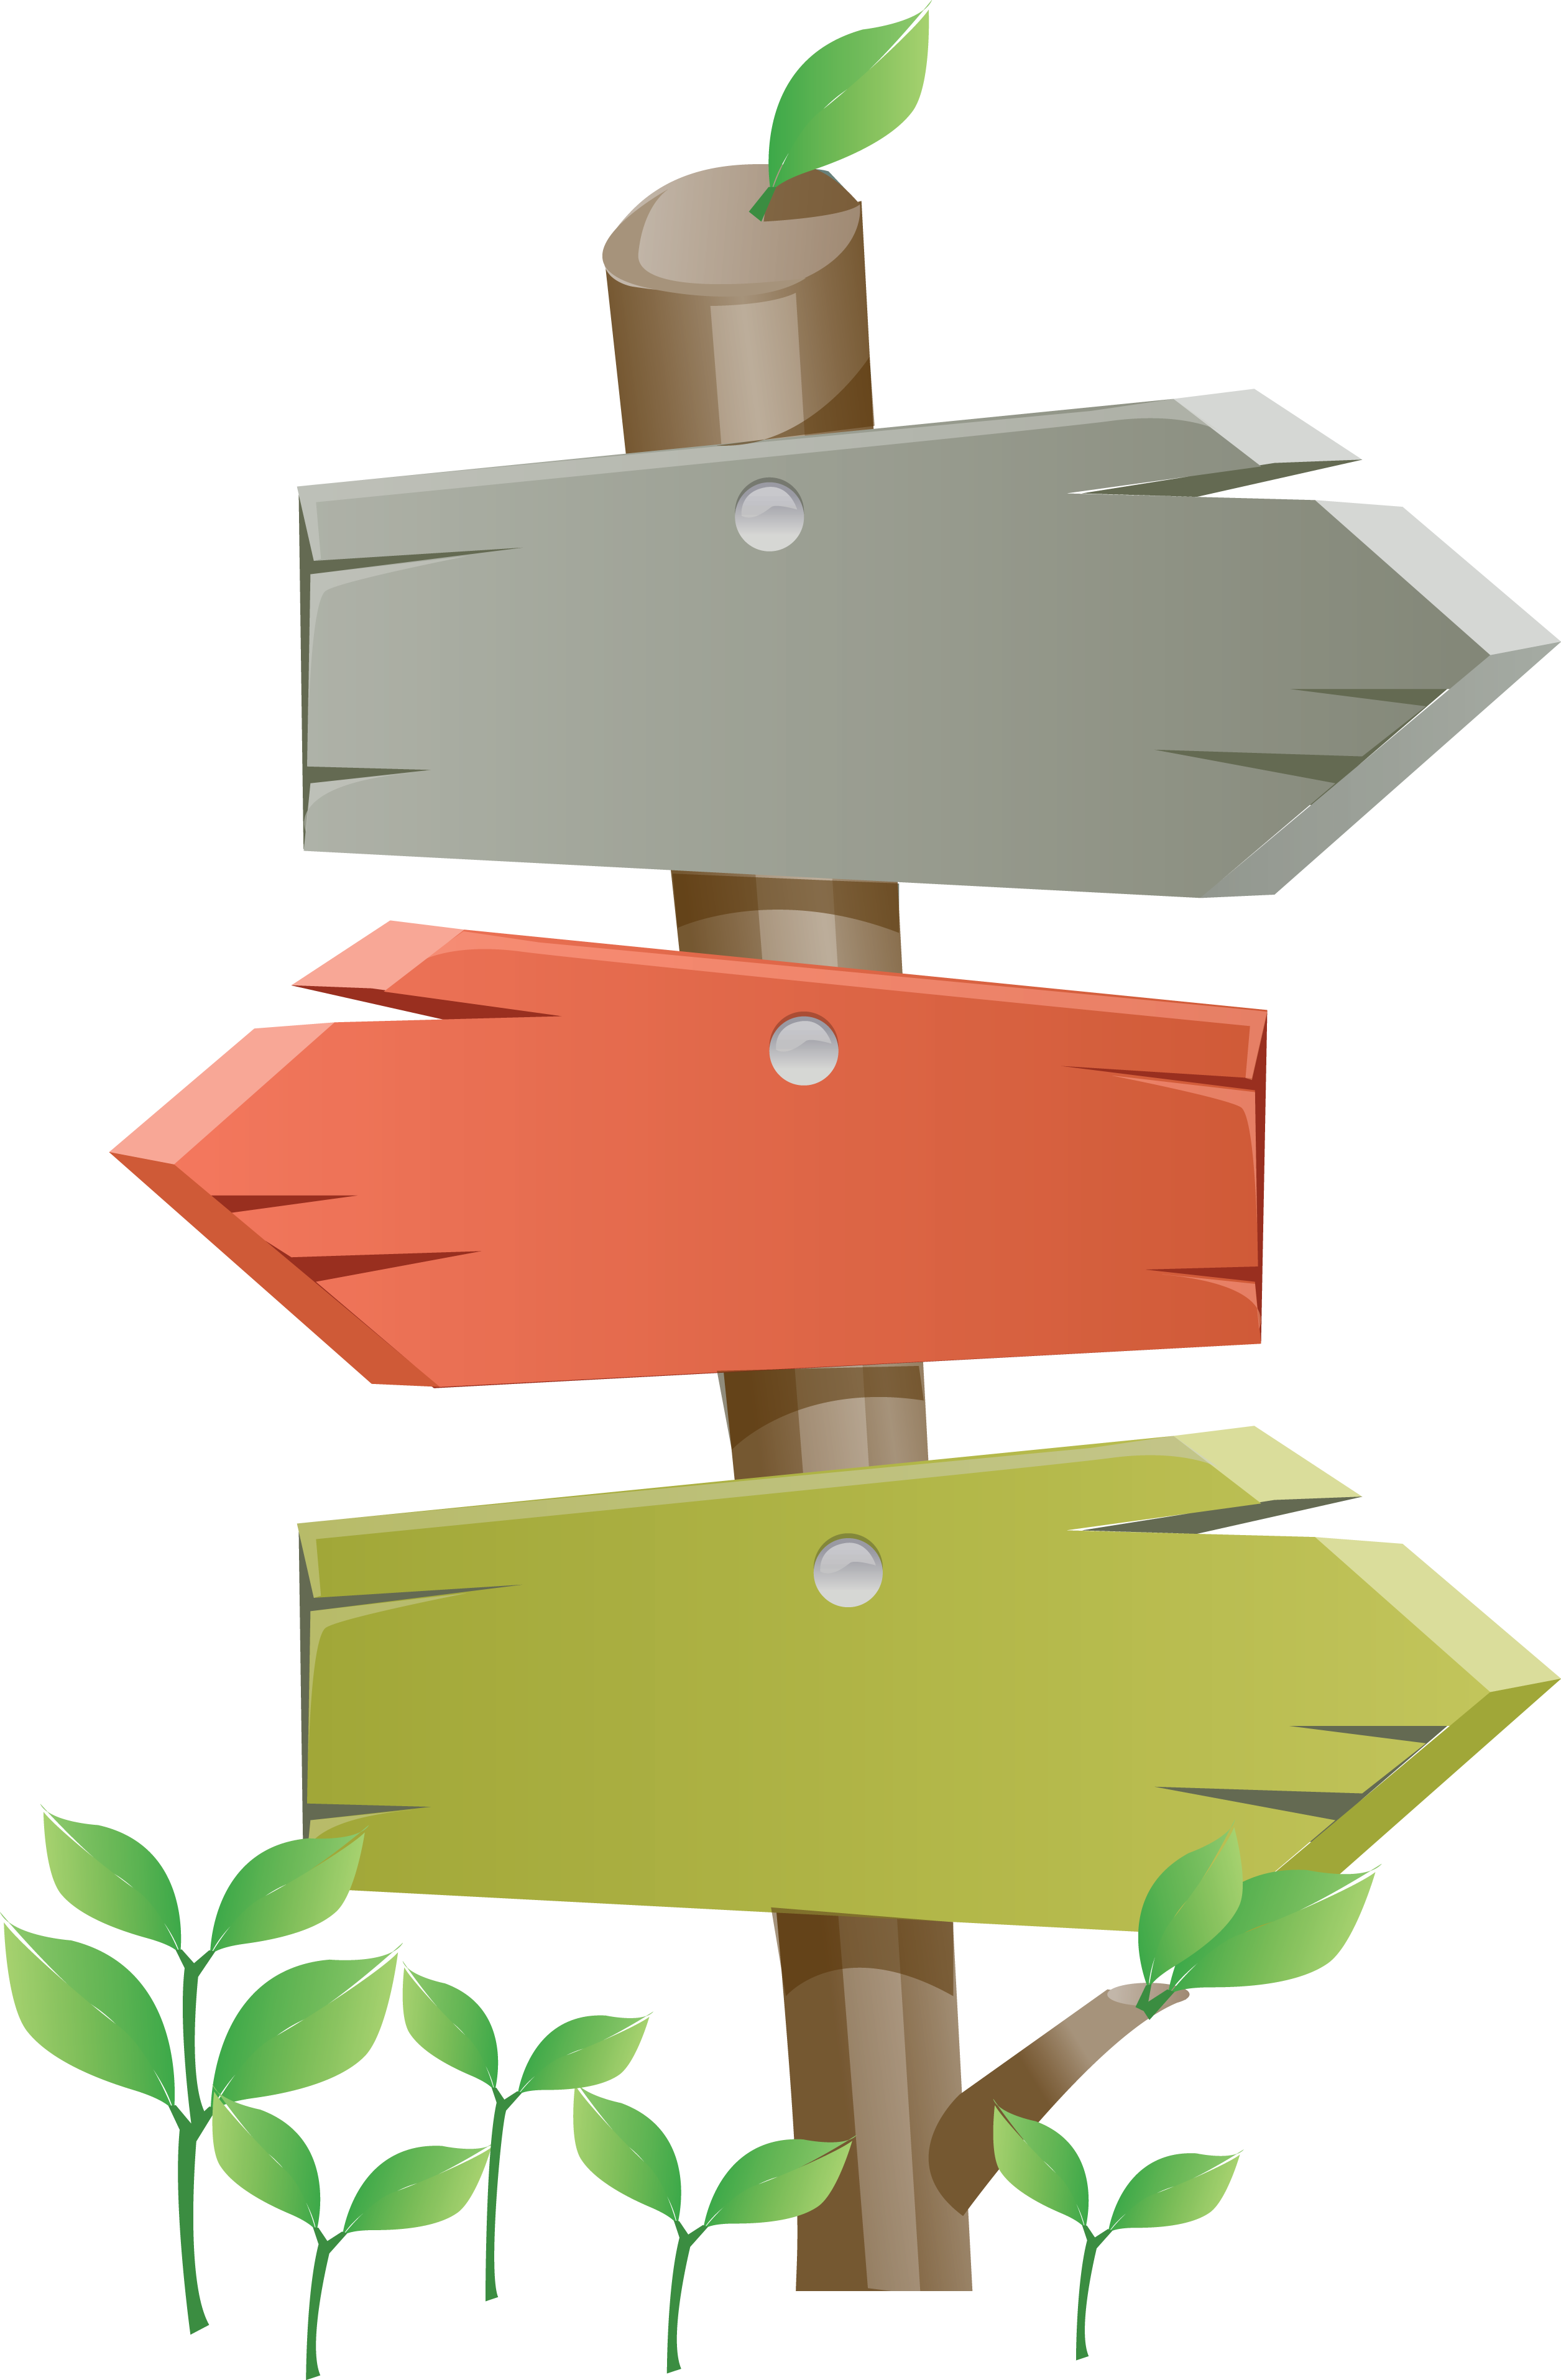 Clipart arrows signboard. Direction position or indication